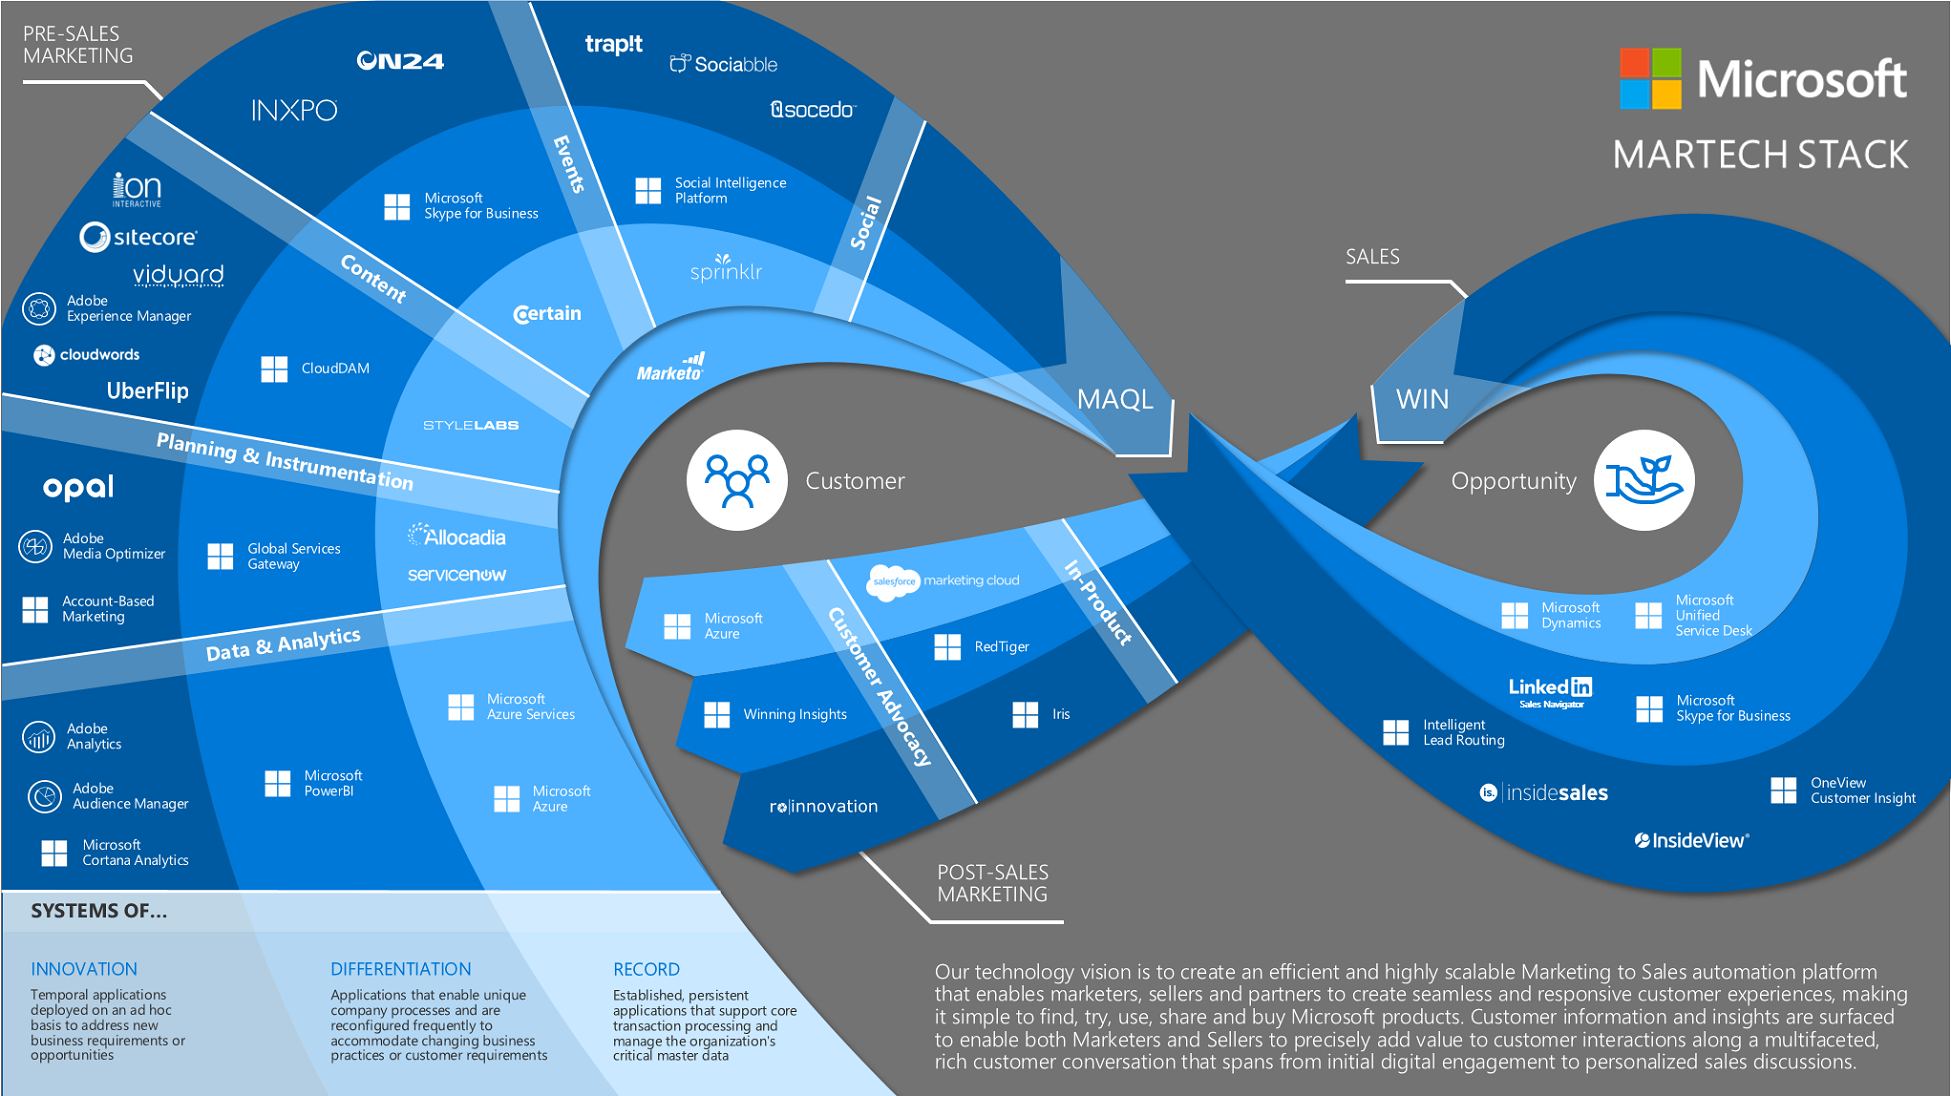 Microsoft Marketing Stack MarTech